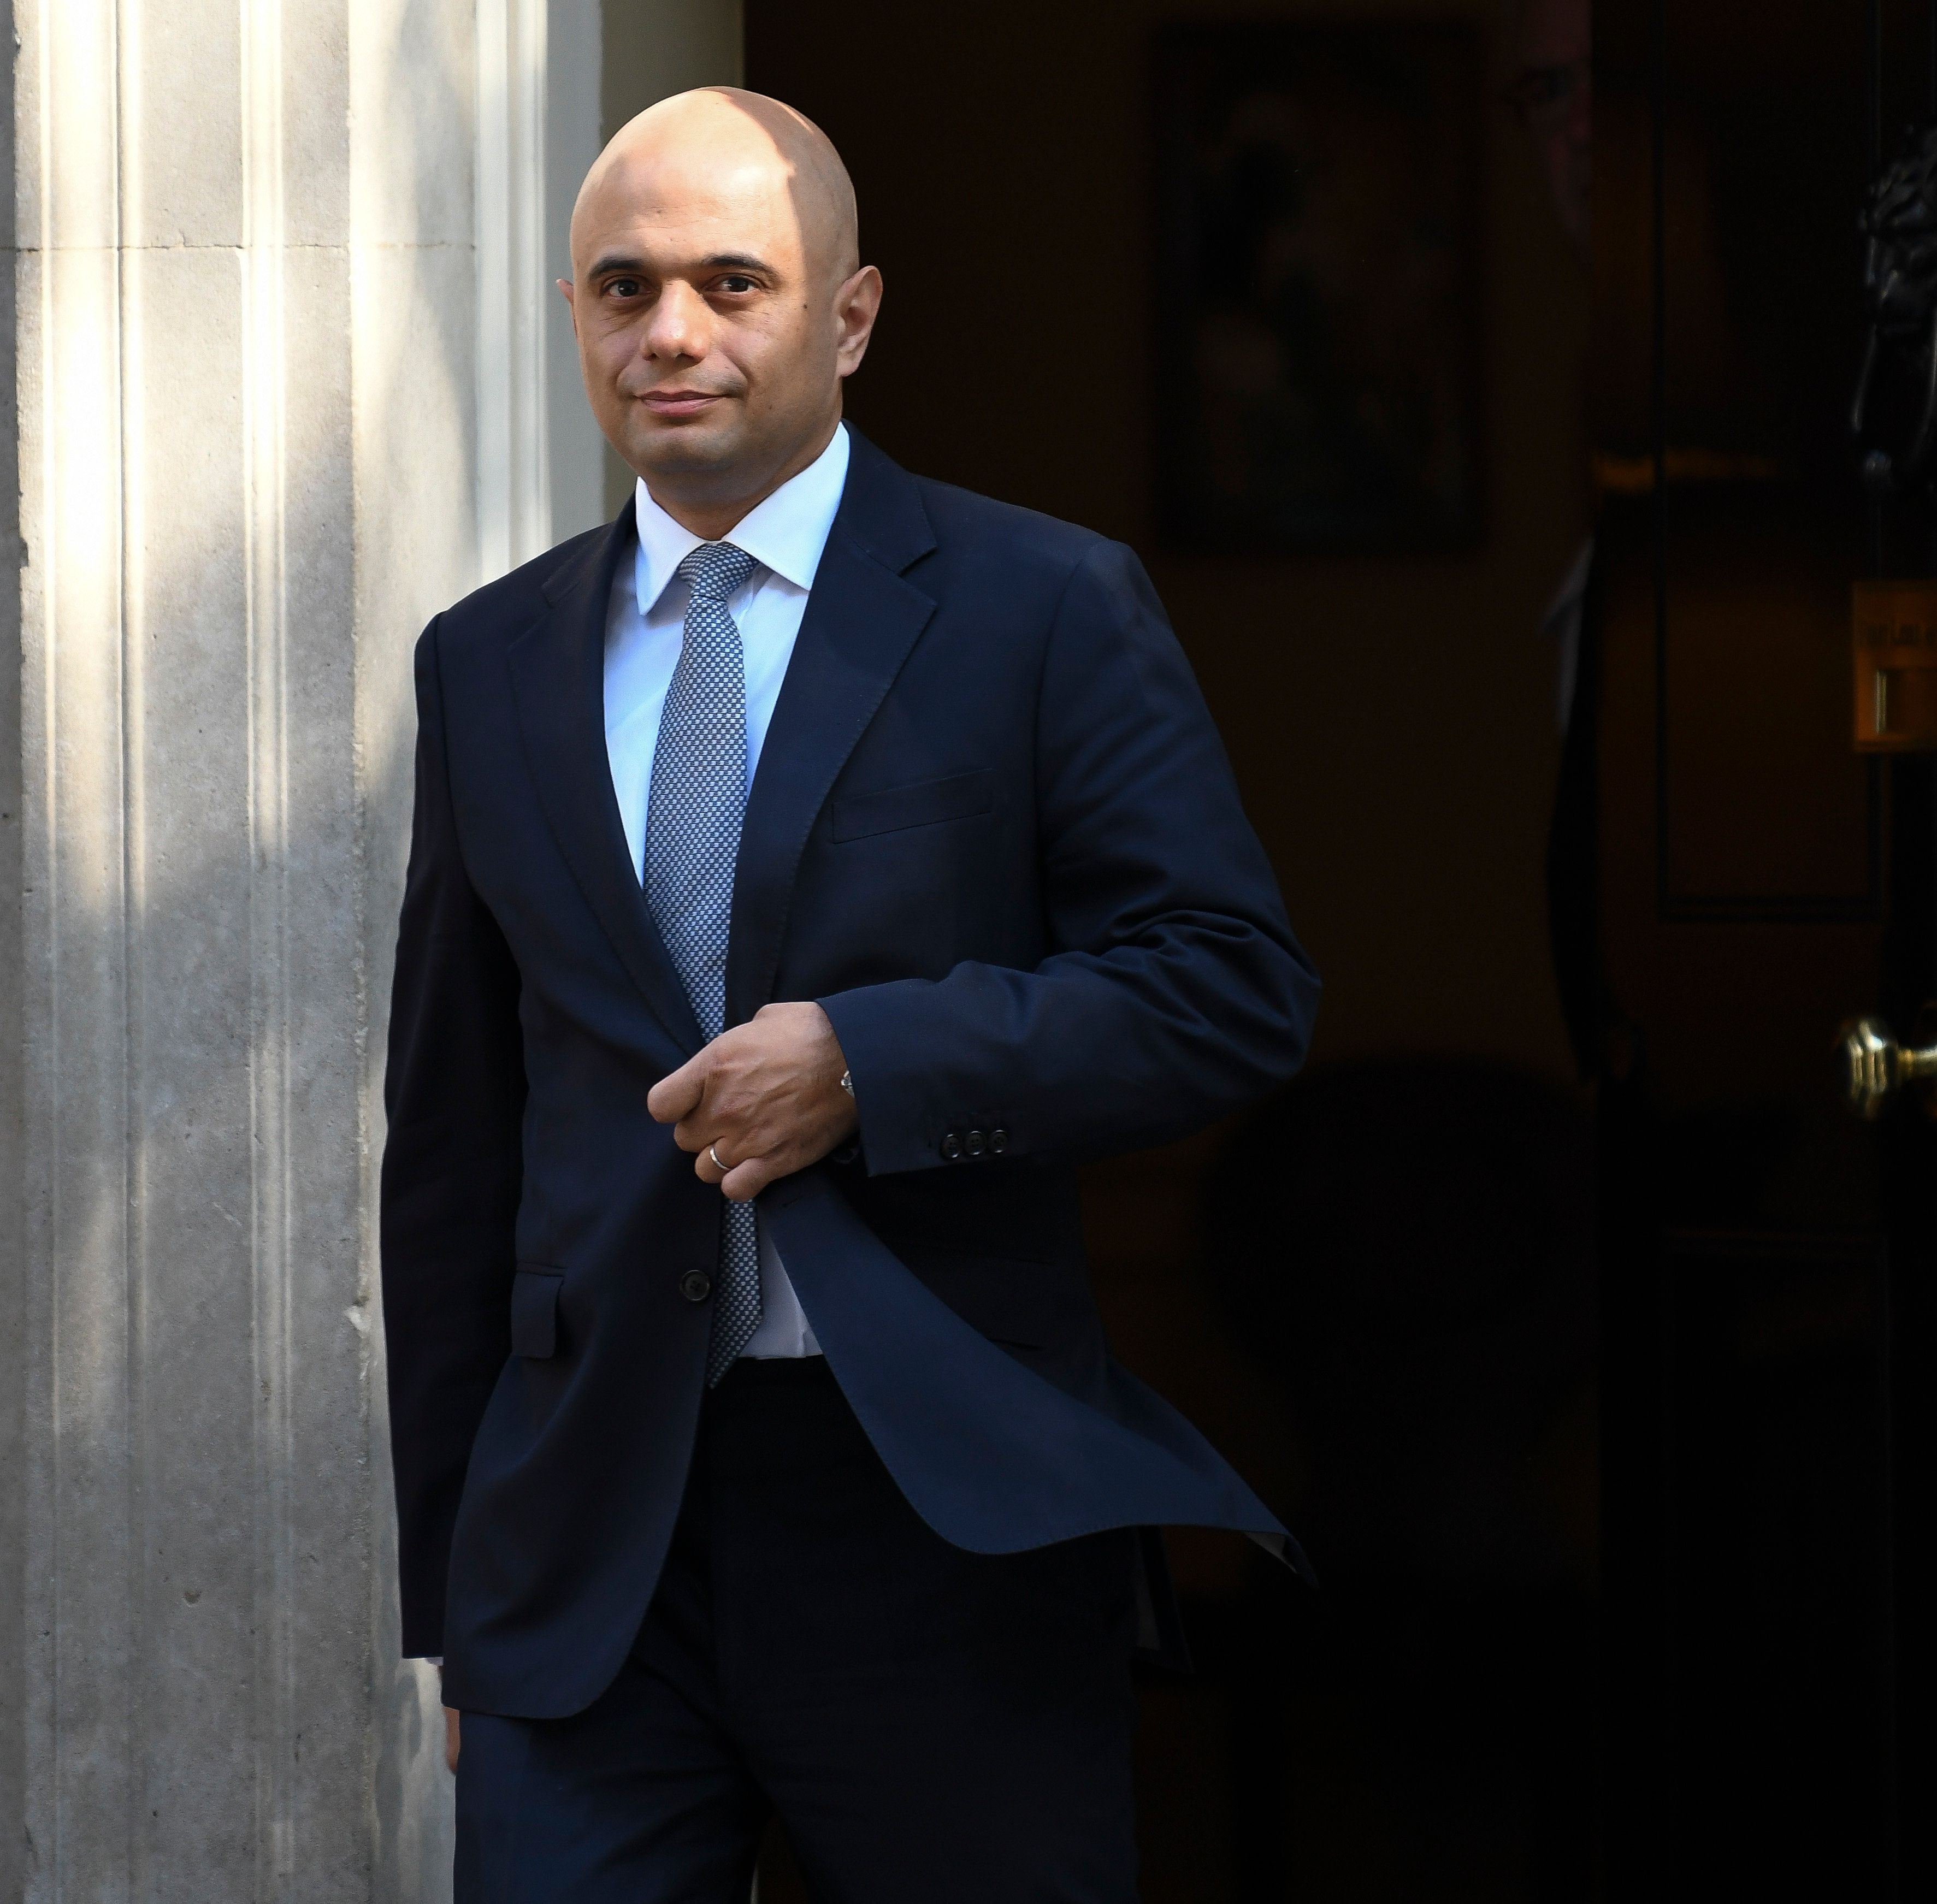 Home Secretary Sajid Javid To Tell Police 'I Get It' After Years Of